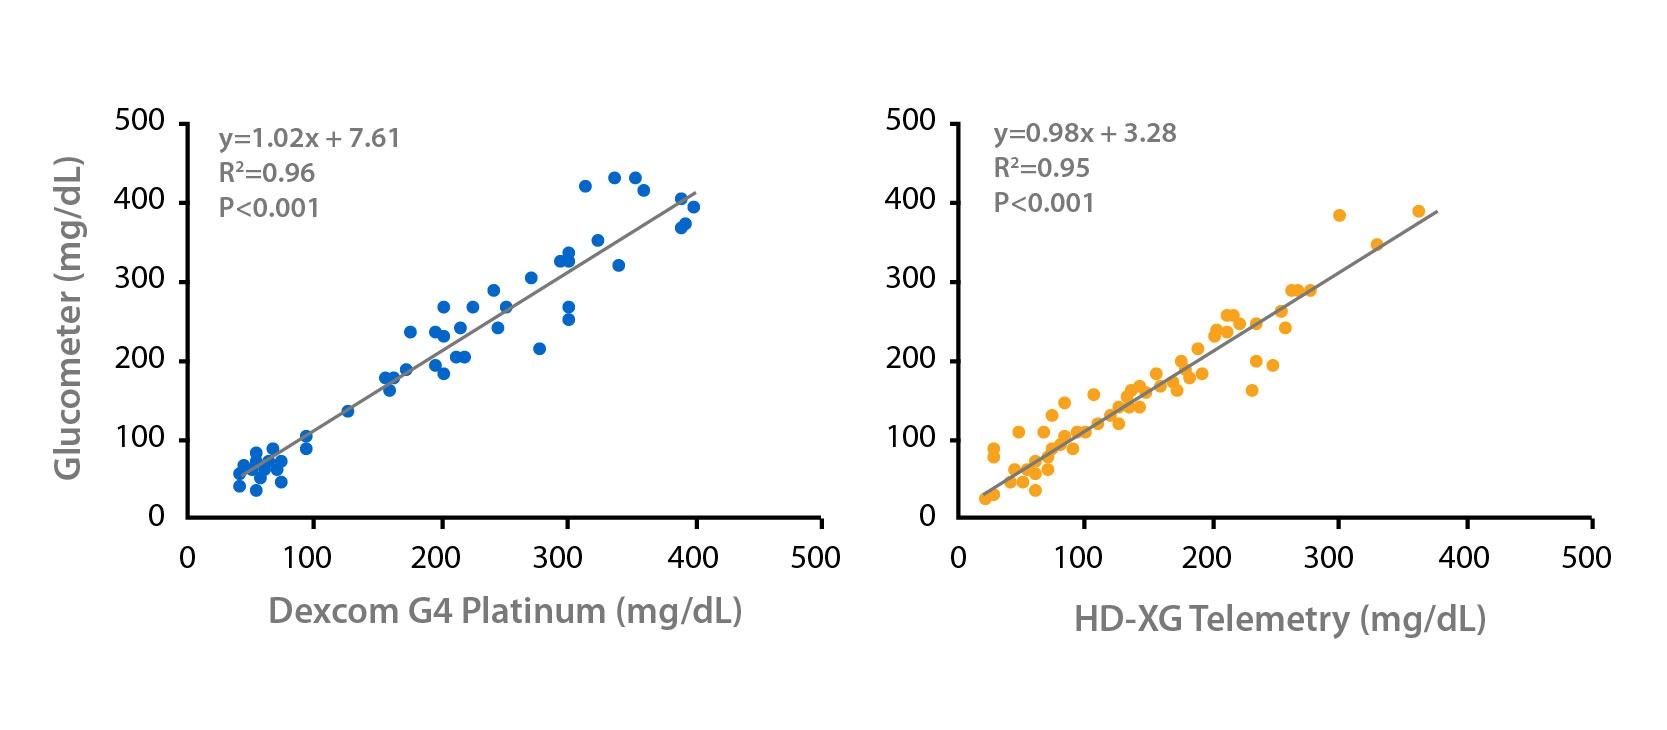 First Type 2 Diabetes Publication Comparing Pros and Cons of Two Preclinical Continuous Glucose Monitoring Systems